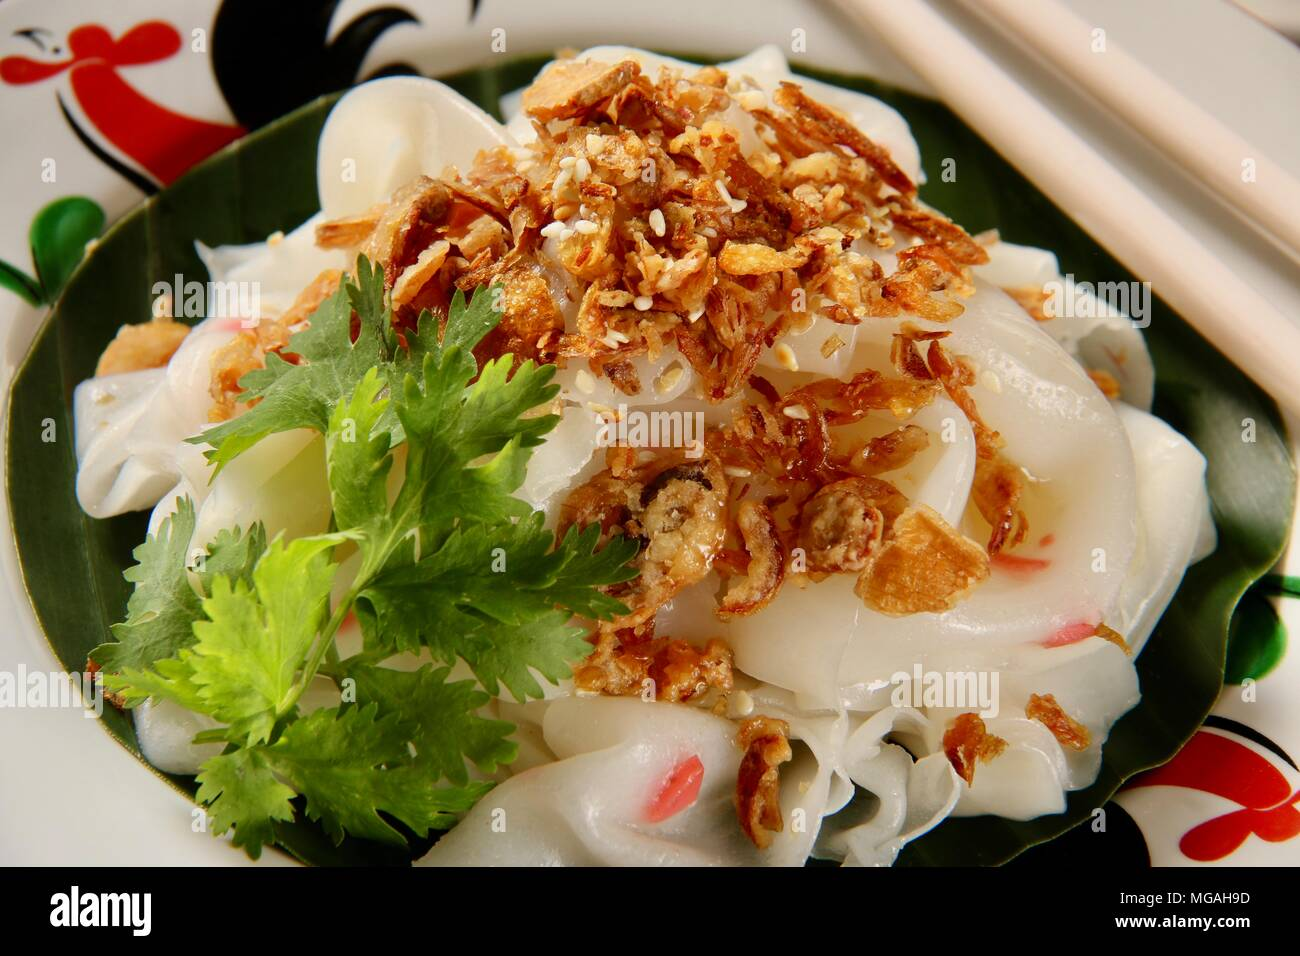 Ci Cong Fan. A local variant of Chee Cheung Fun, the thin rice noodle sheet dish. A very popular street food in Medan. - Stock Image